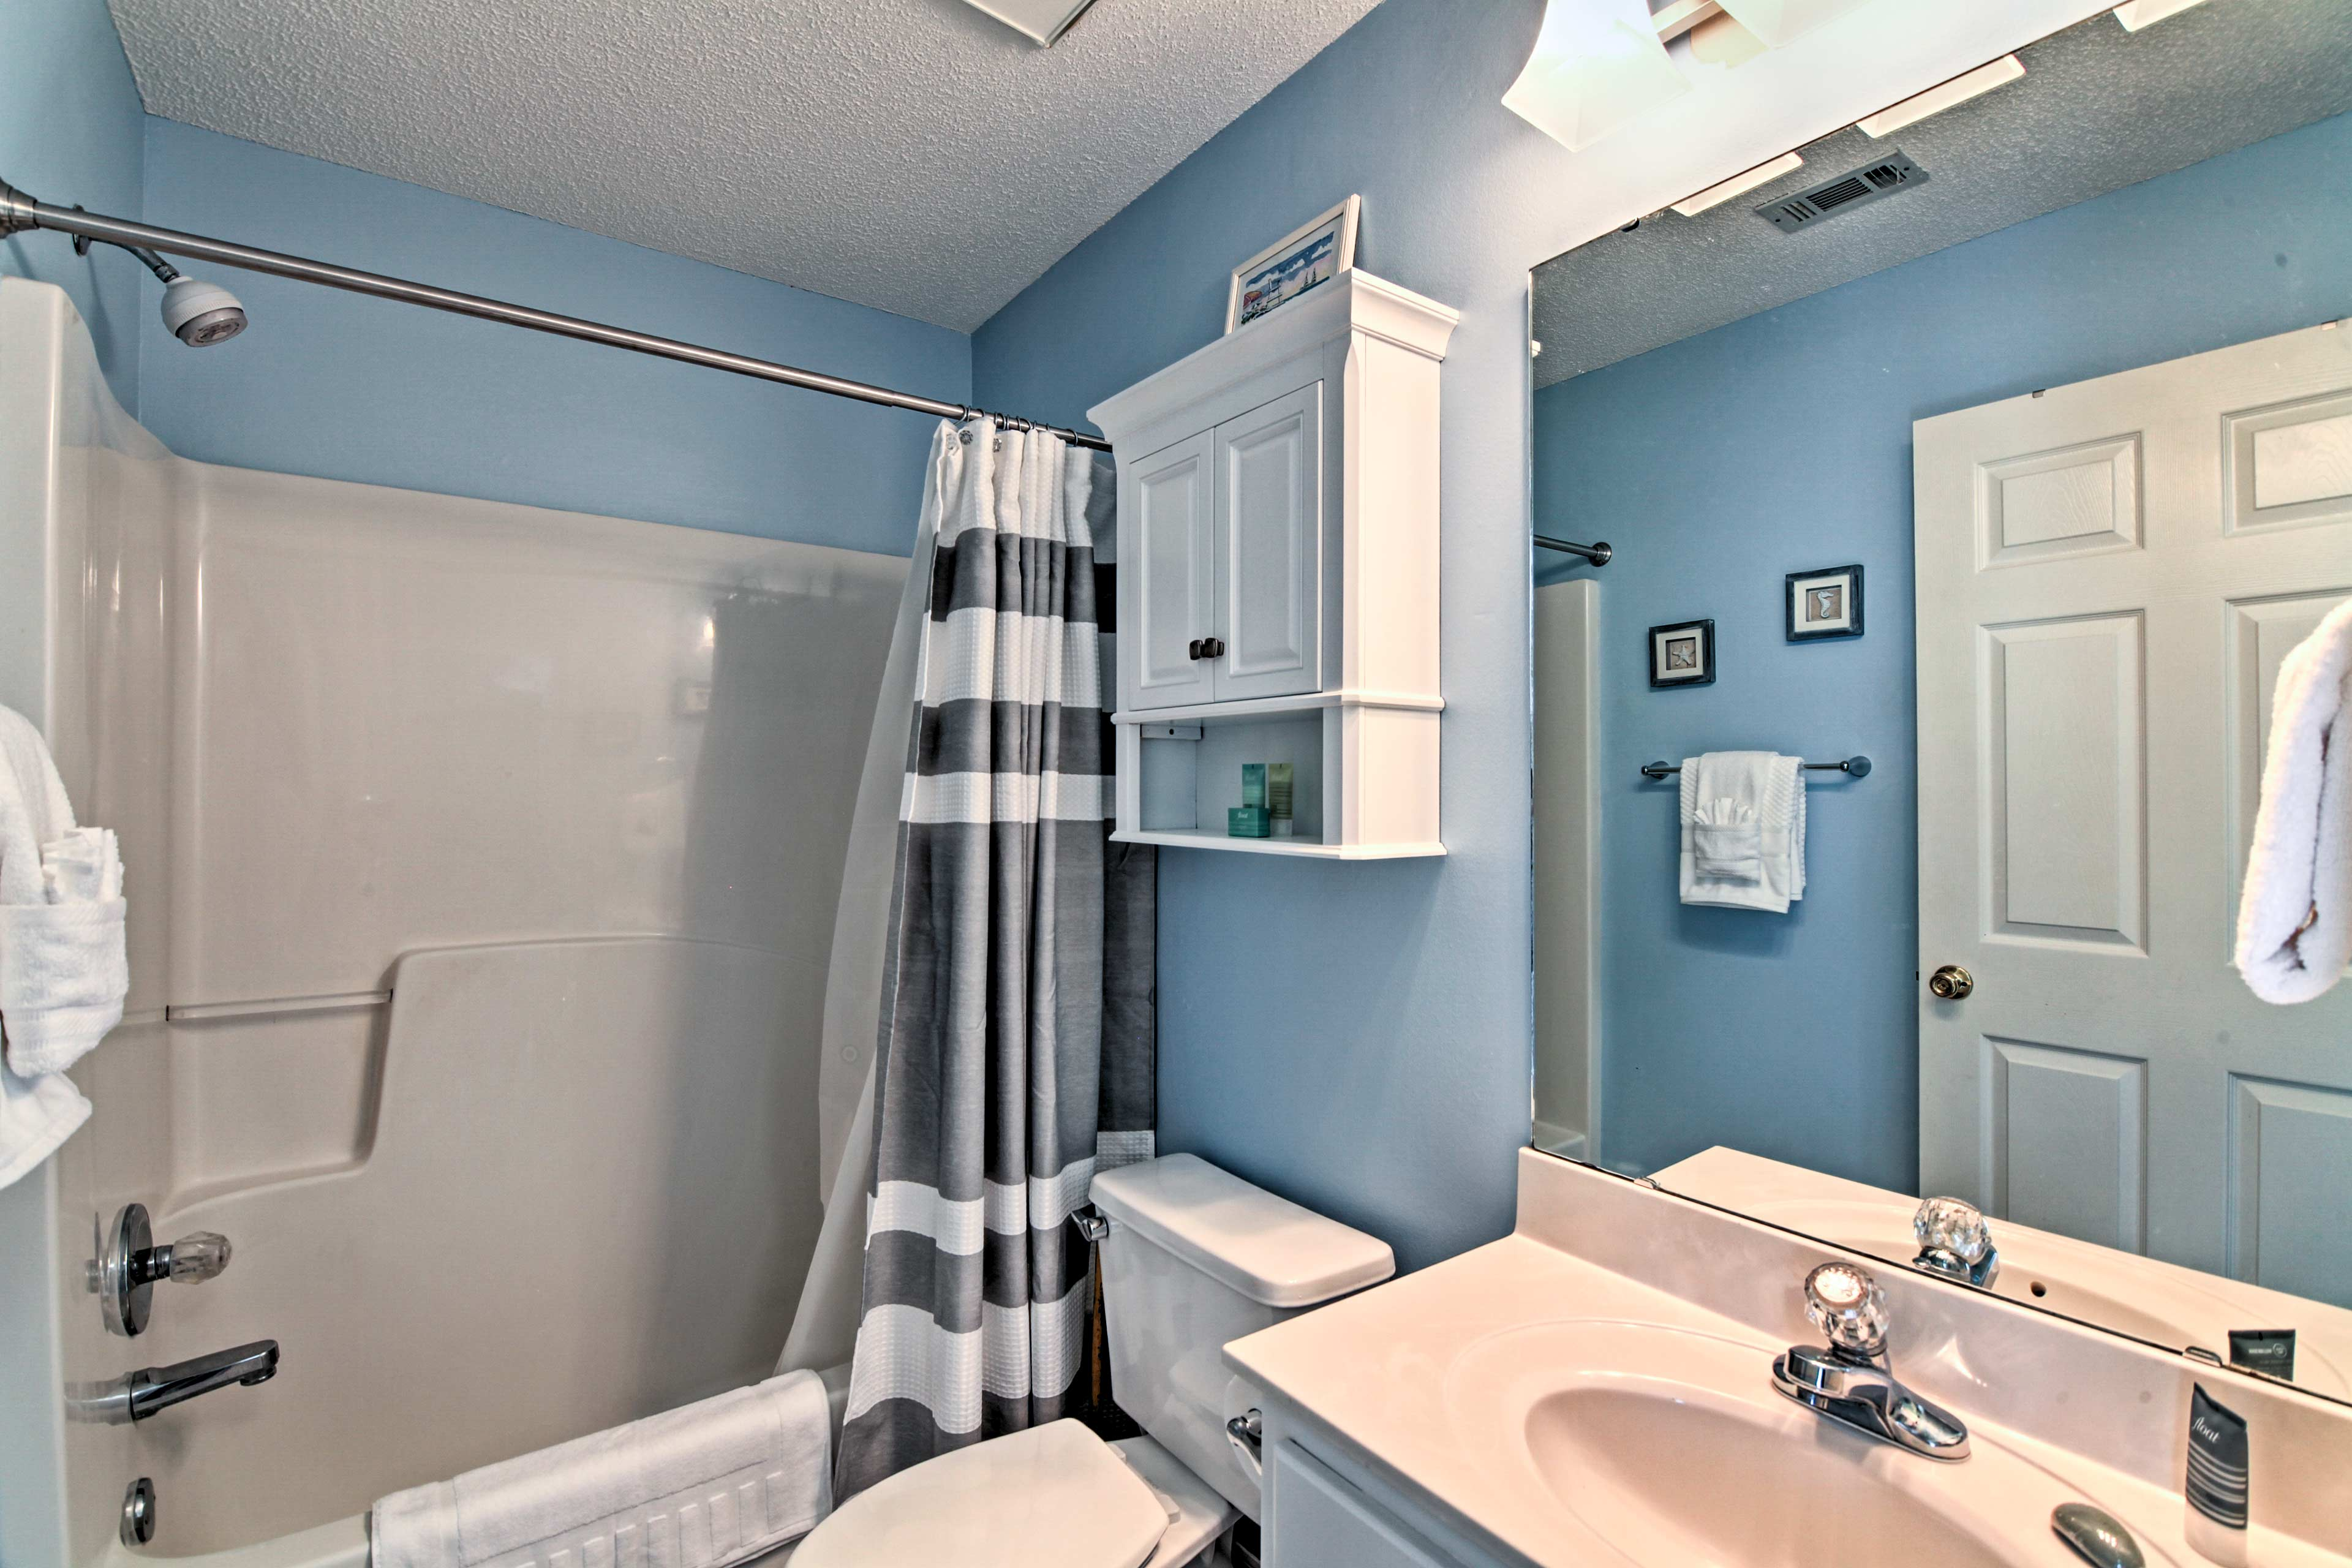 Take a shower in one of the 2 bathrooms to unwind from an adventure-filled day.